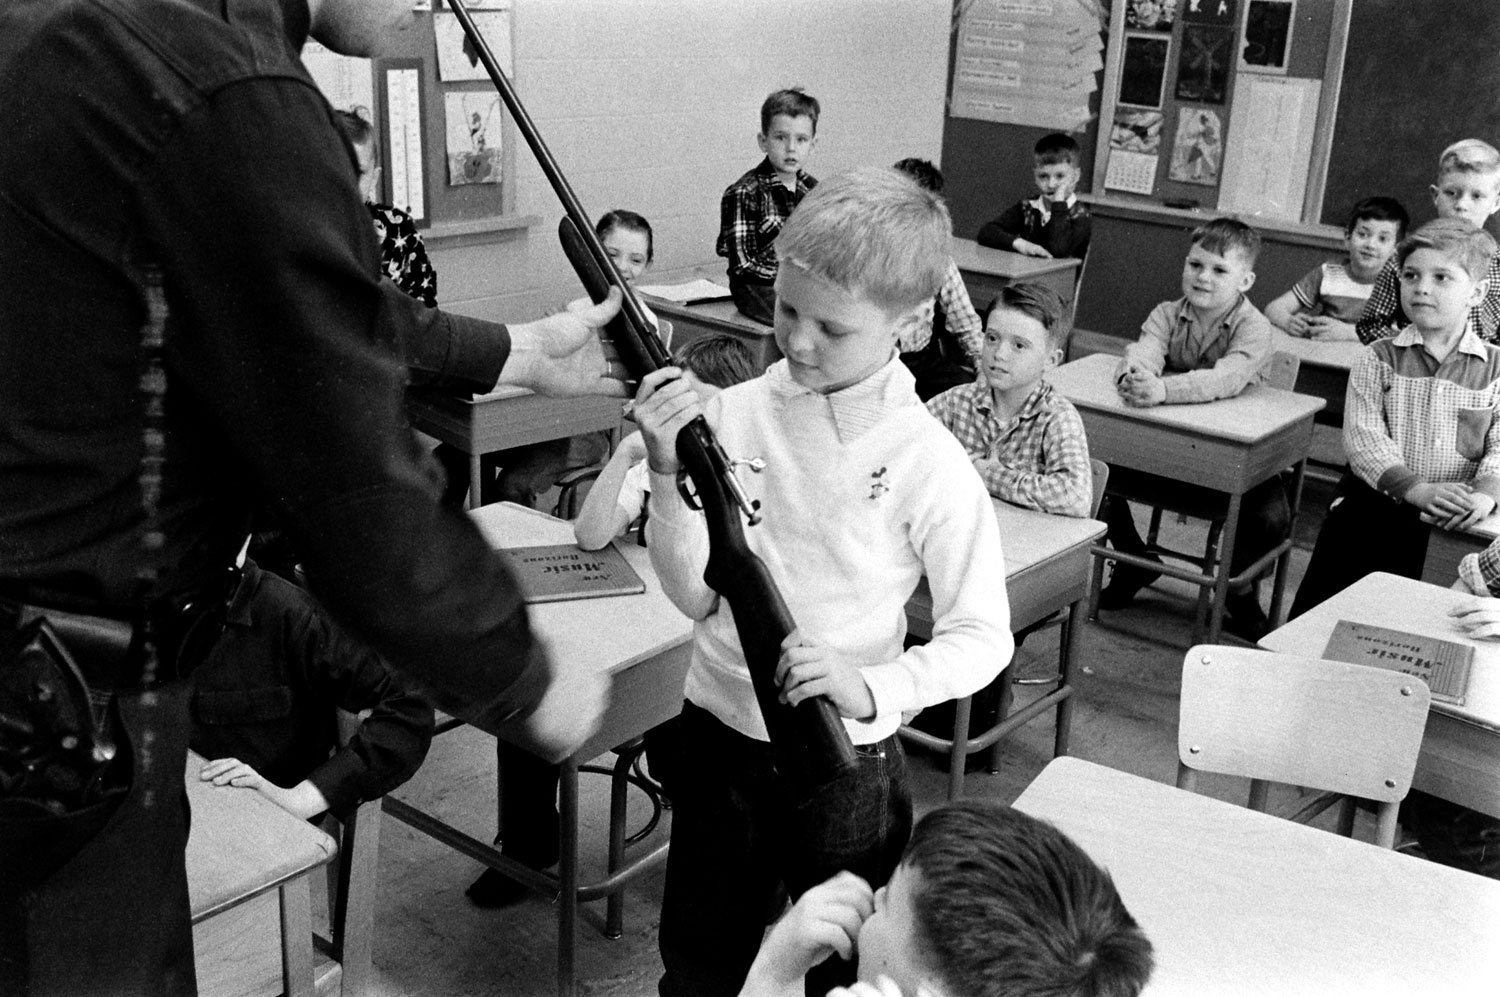 Gun safety instruction, Indiana, 1956.